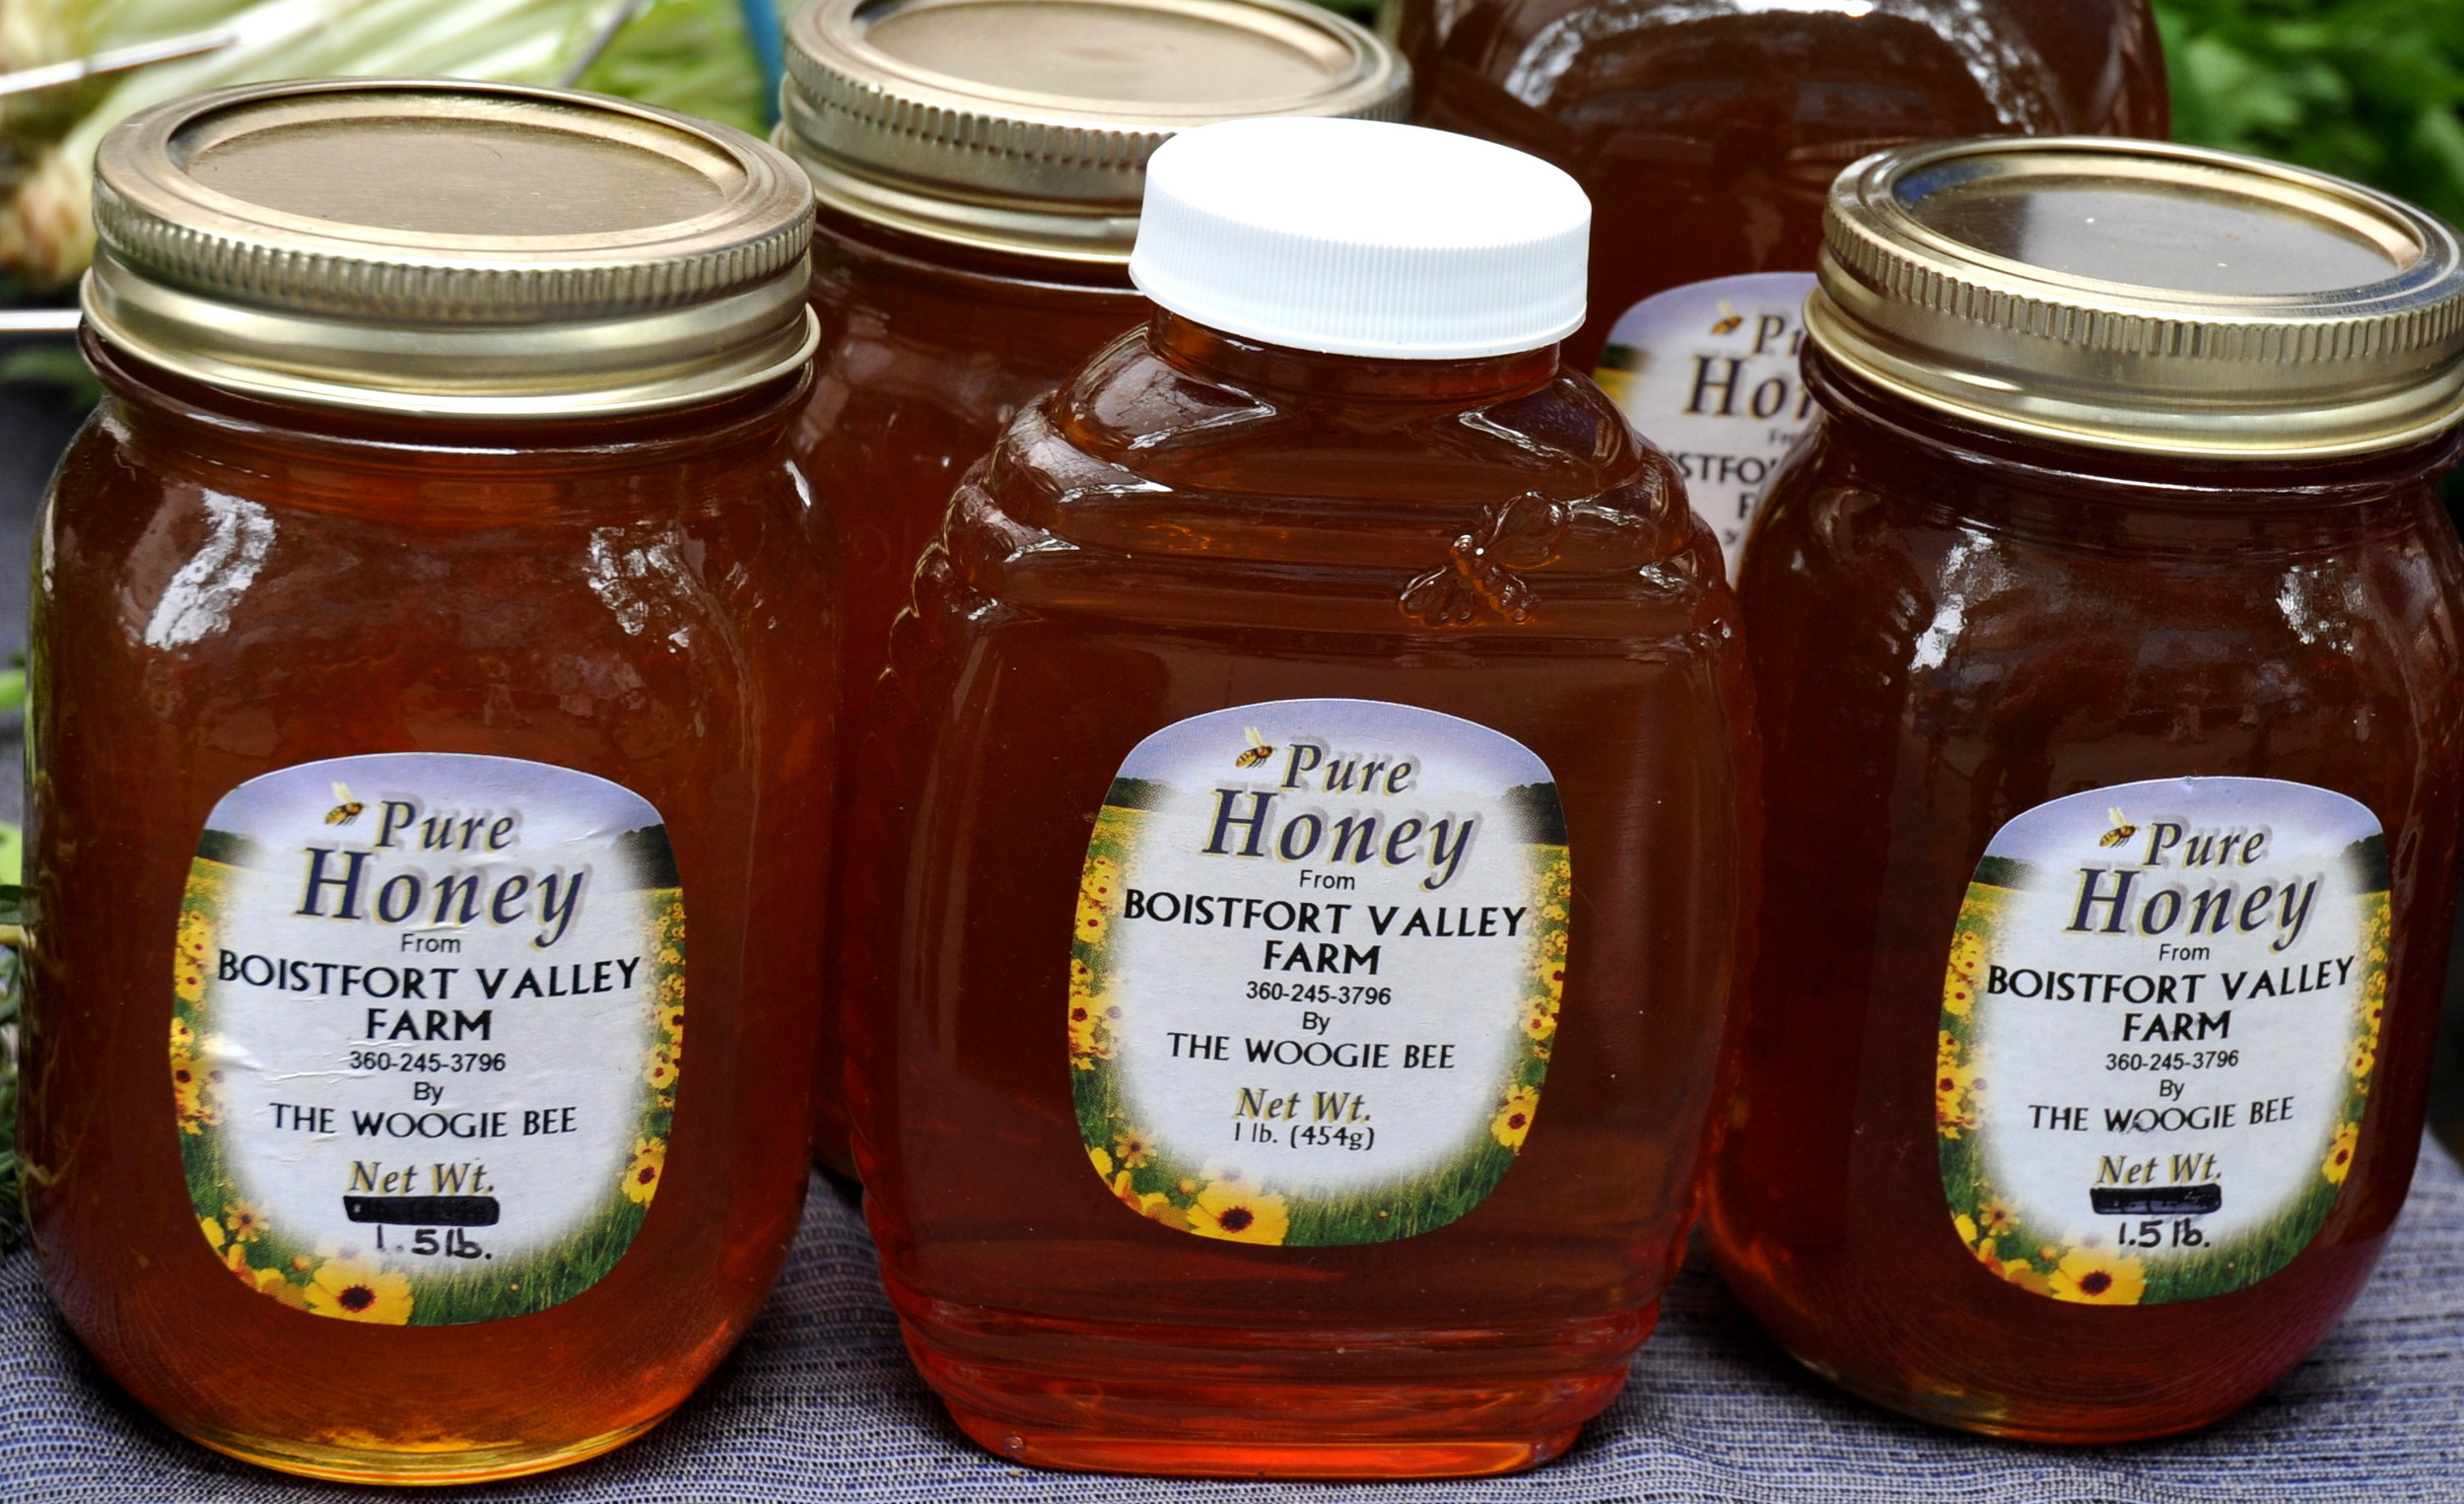 Farm-fresh honey from Boistfort Valley Farm. Photo copyright 2013 by Zachary D. Lyons.